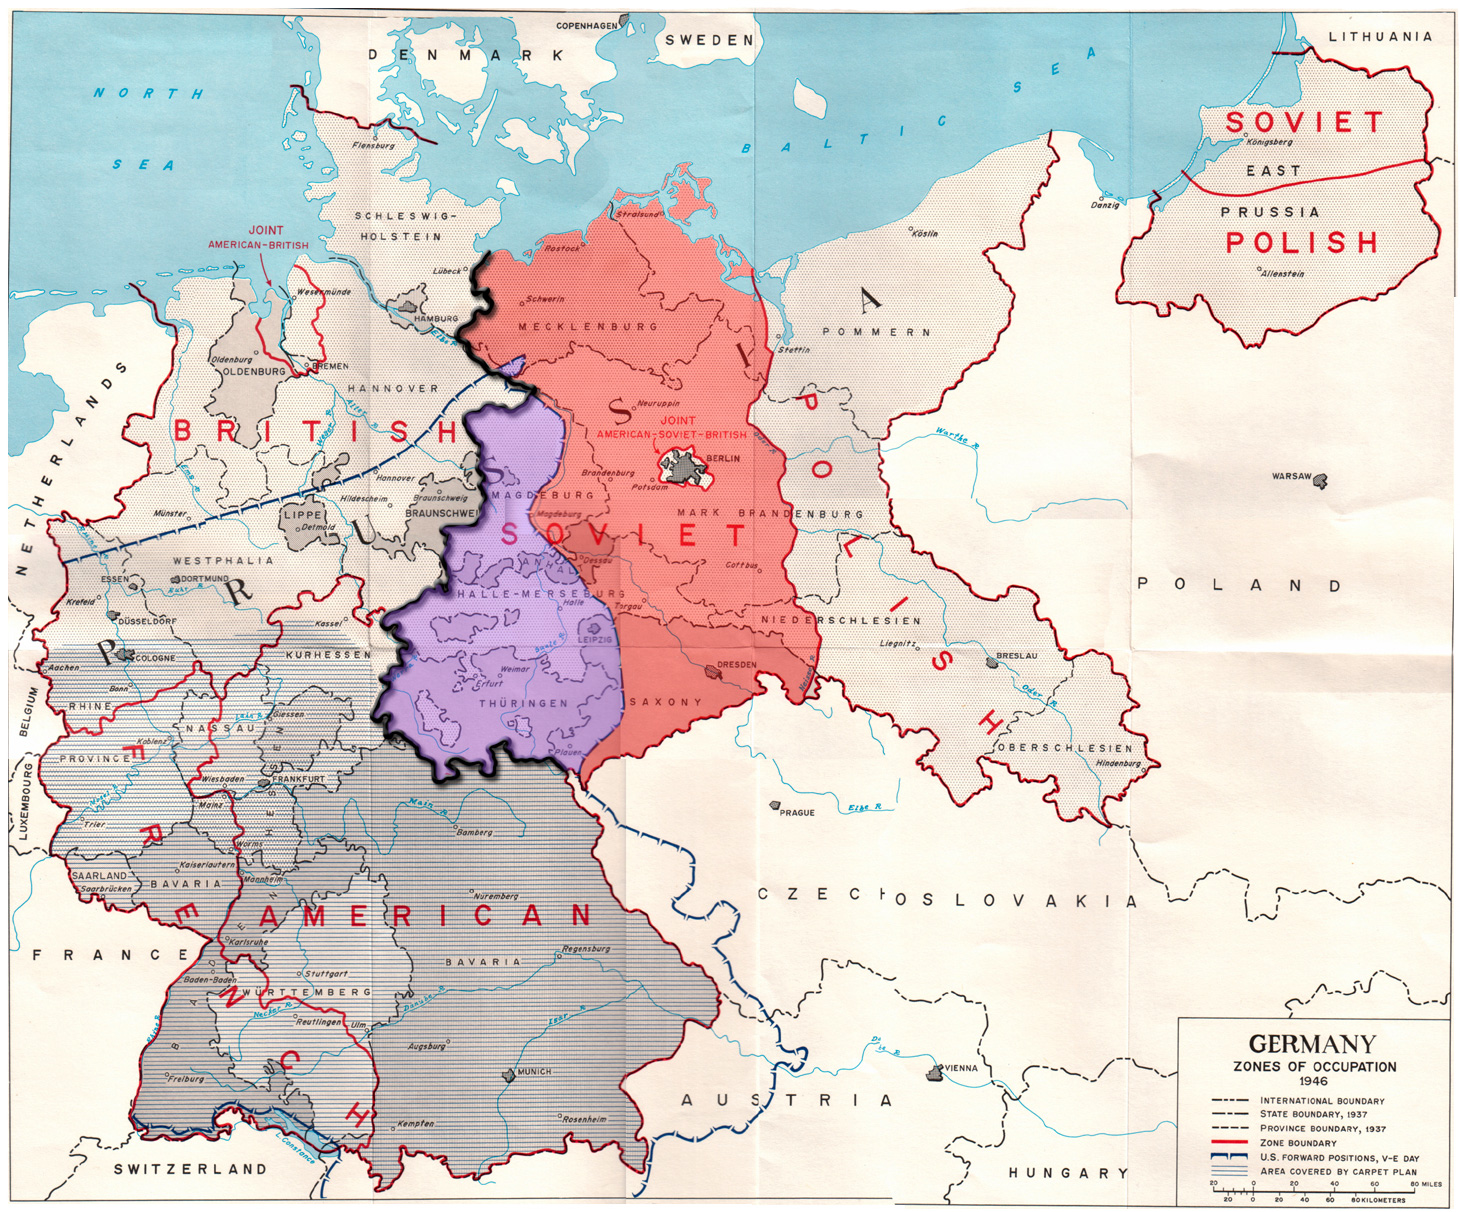 Germany Zones of Occupation 1946